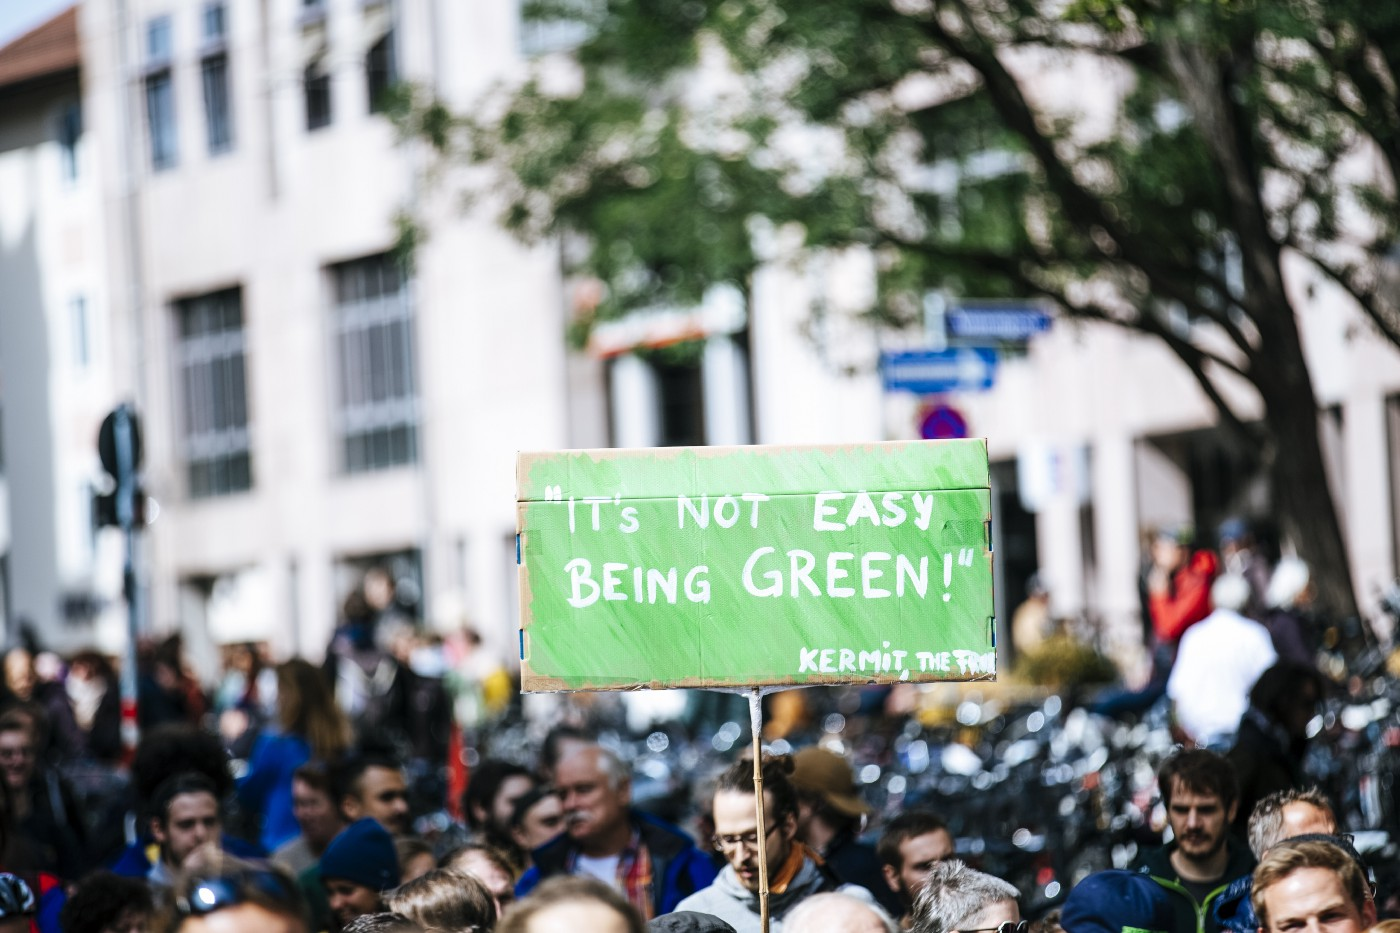 """A cardboard cutout in focus that reads """"It's not easy being green!"""" with a crowd in the background"""